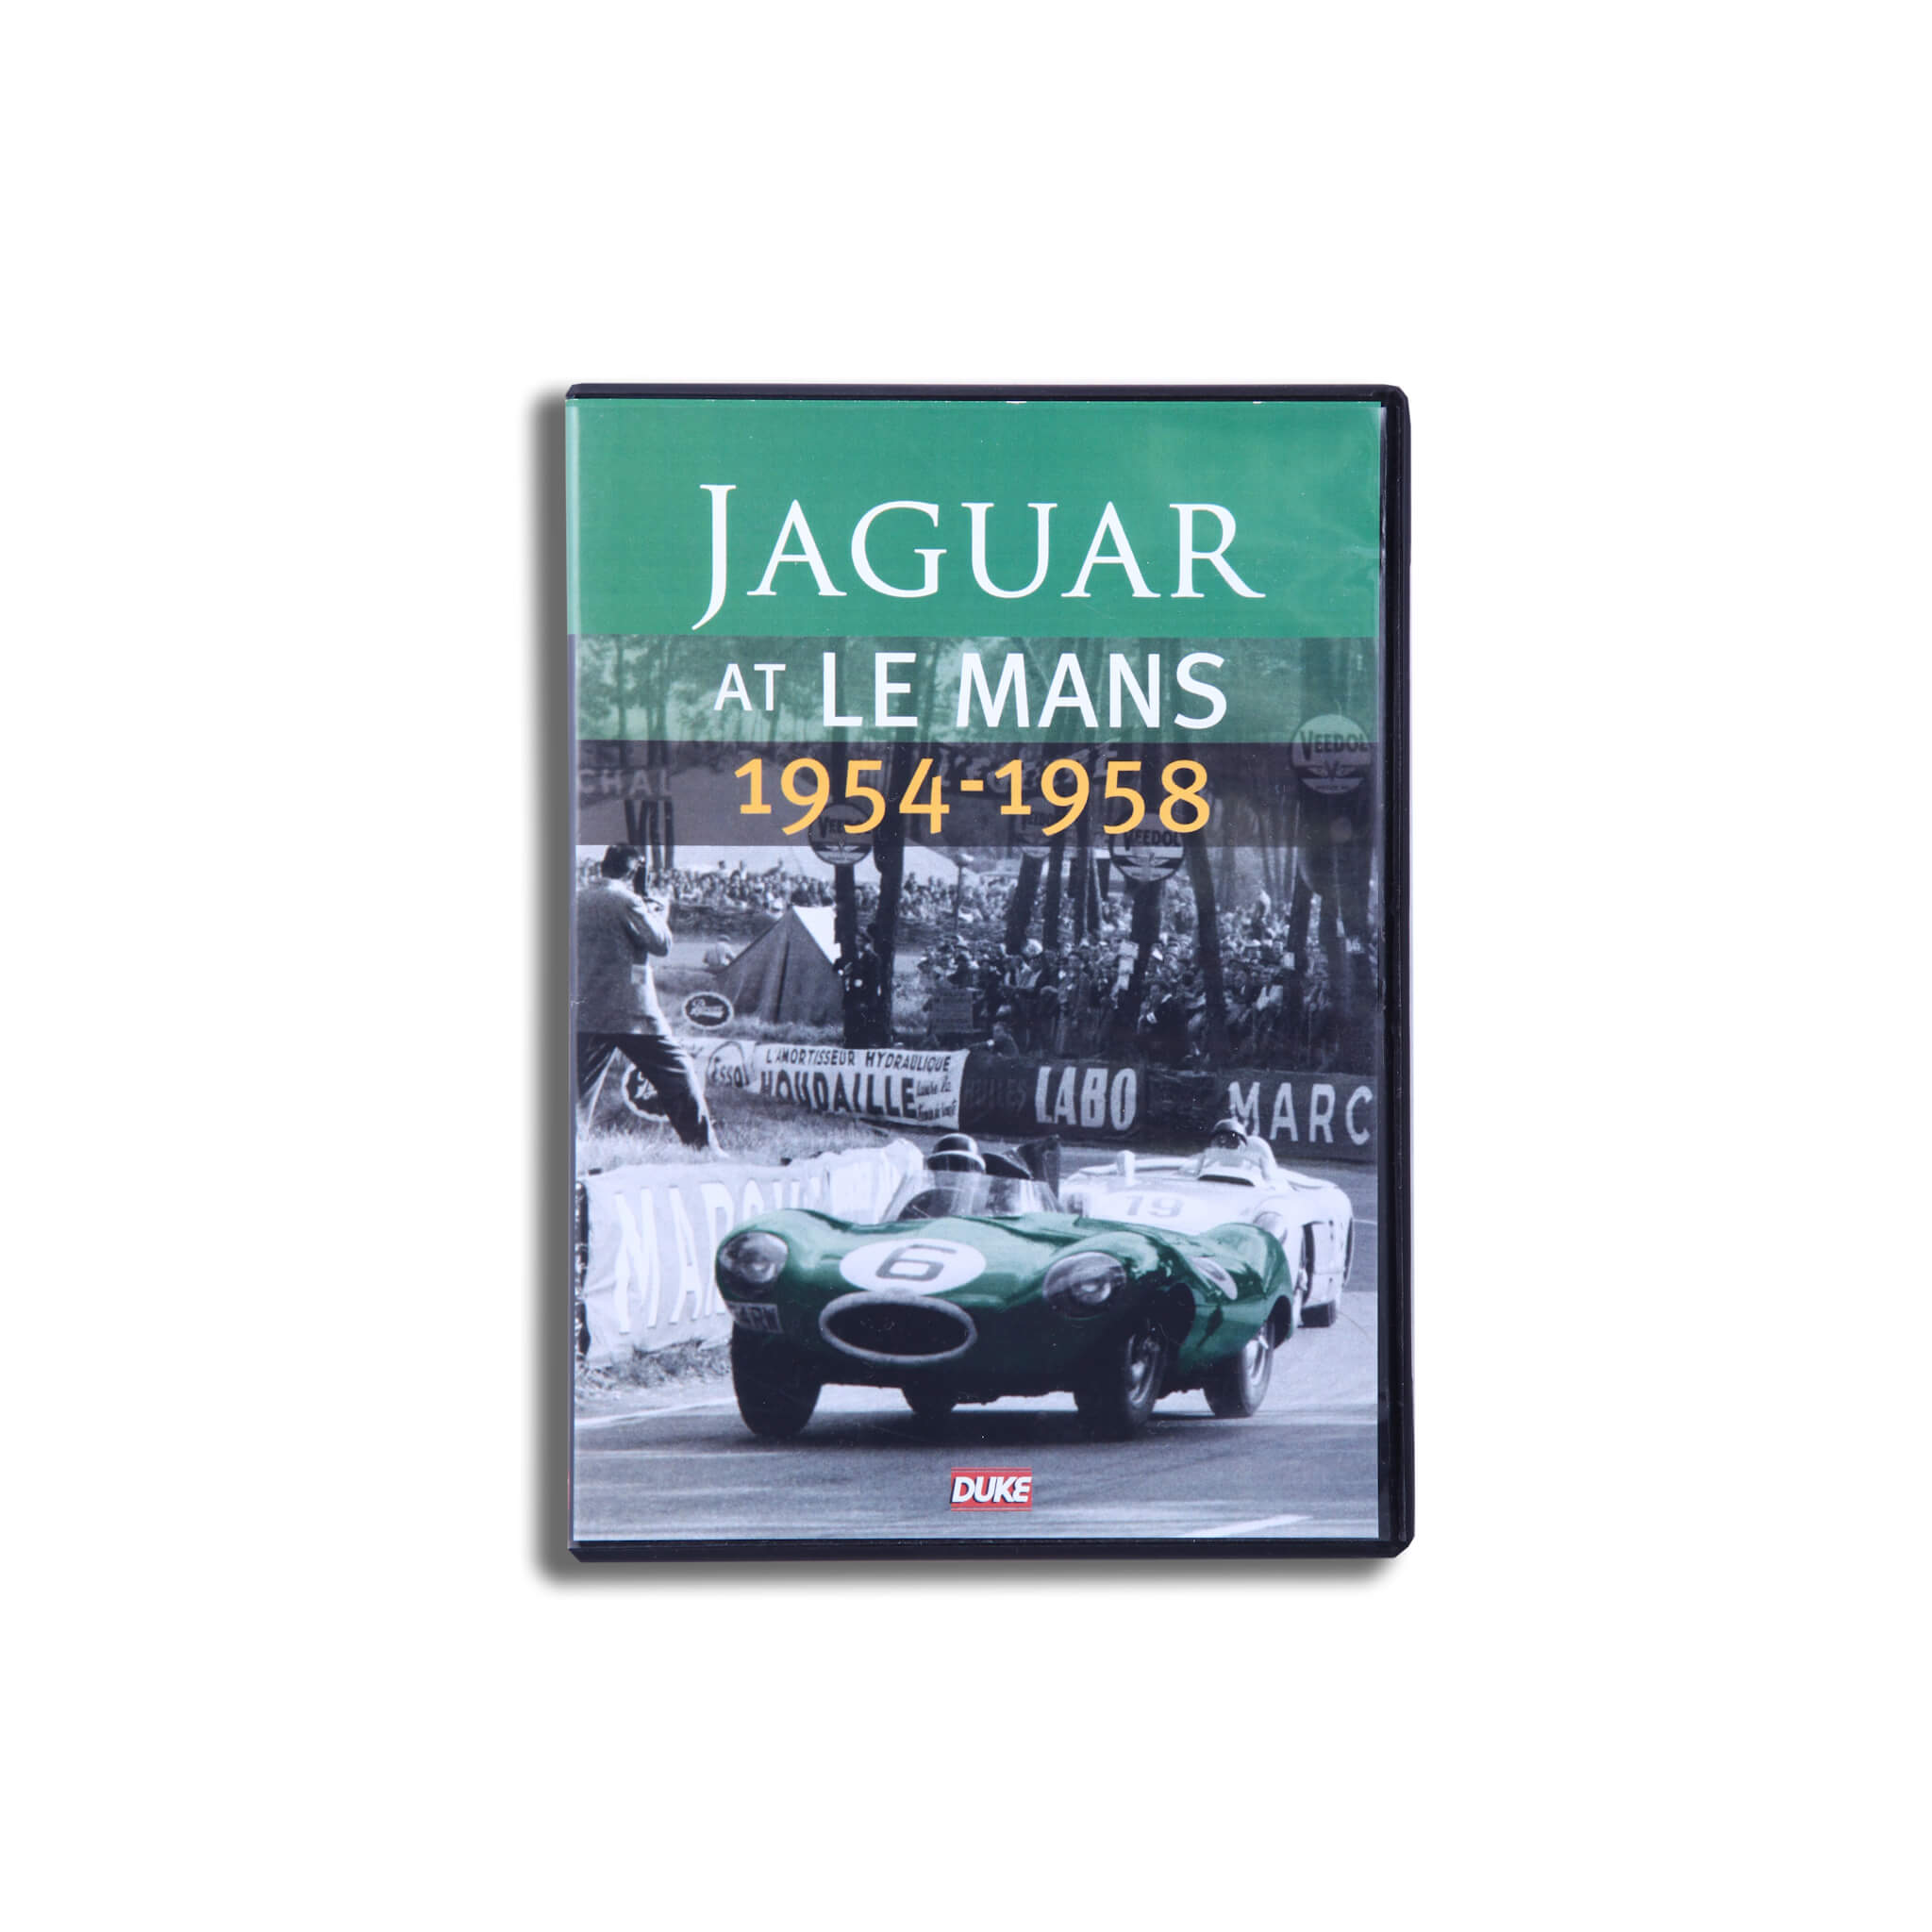 Jaguar At Le Mans 1954-1958 Dvd Dvd